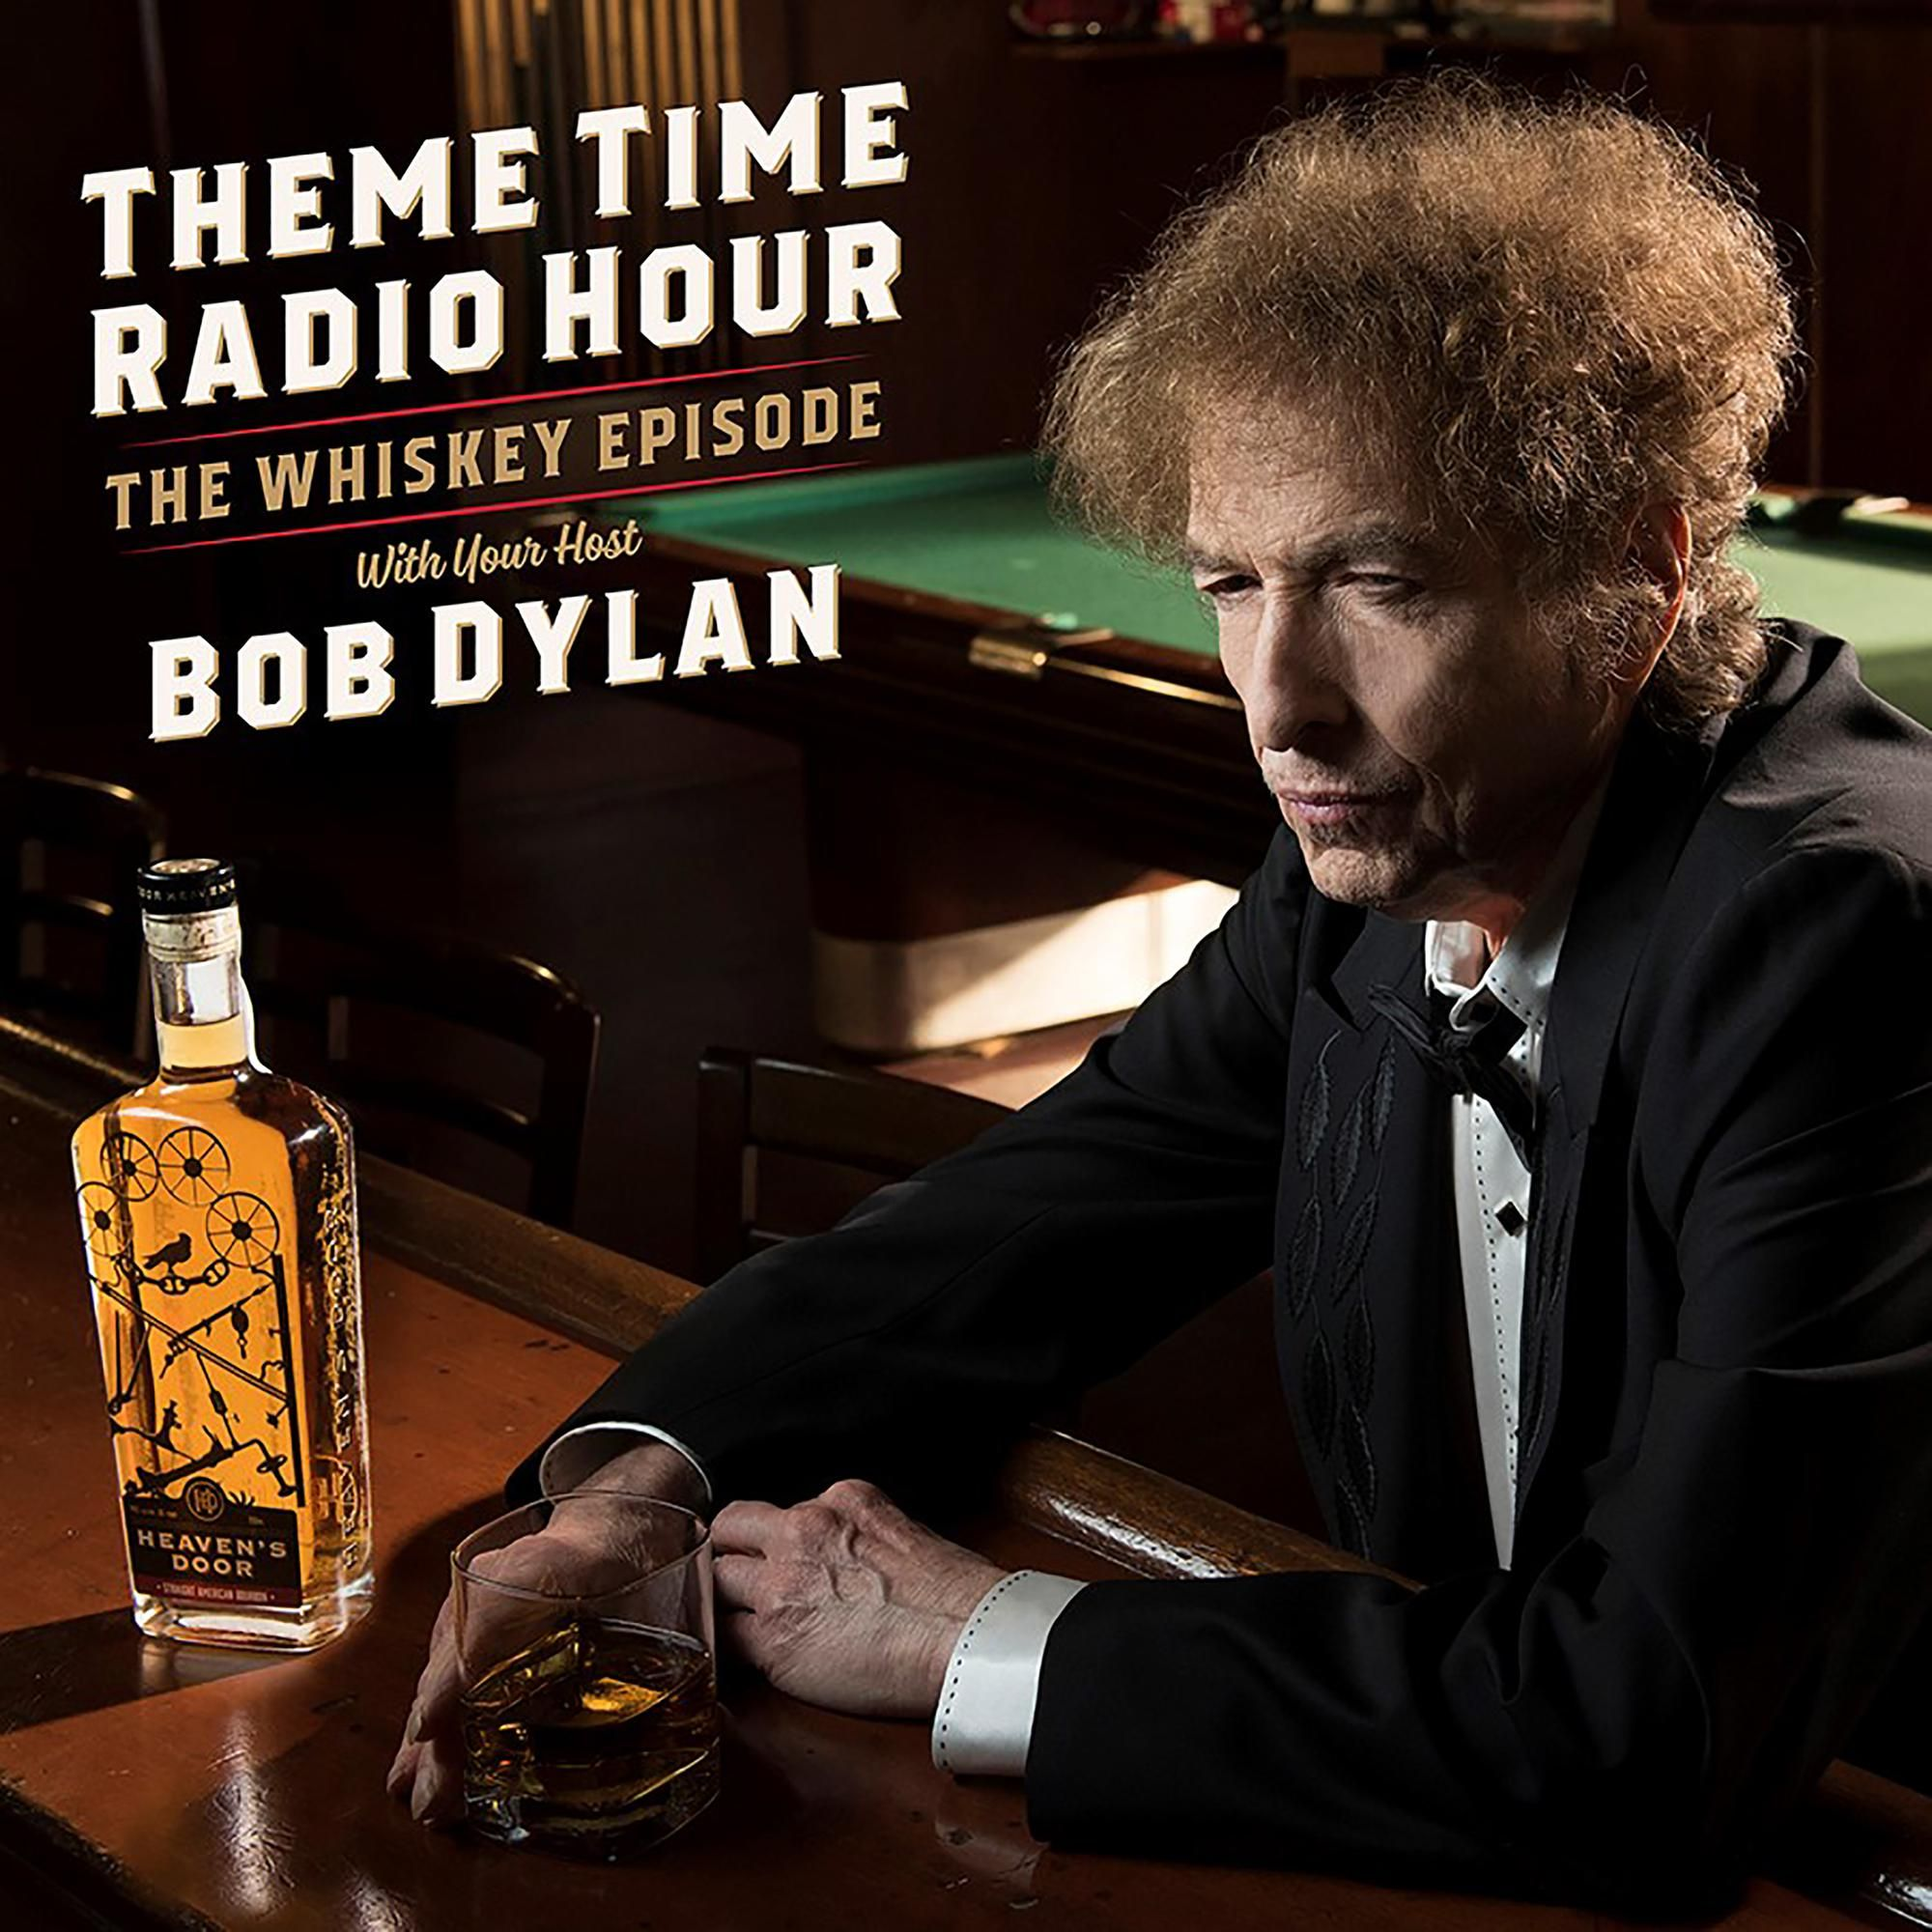 The Whiskey Episode, with your host Bob Dylan